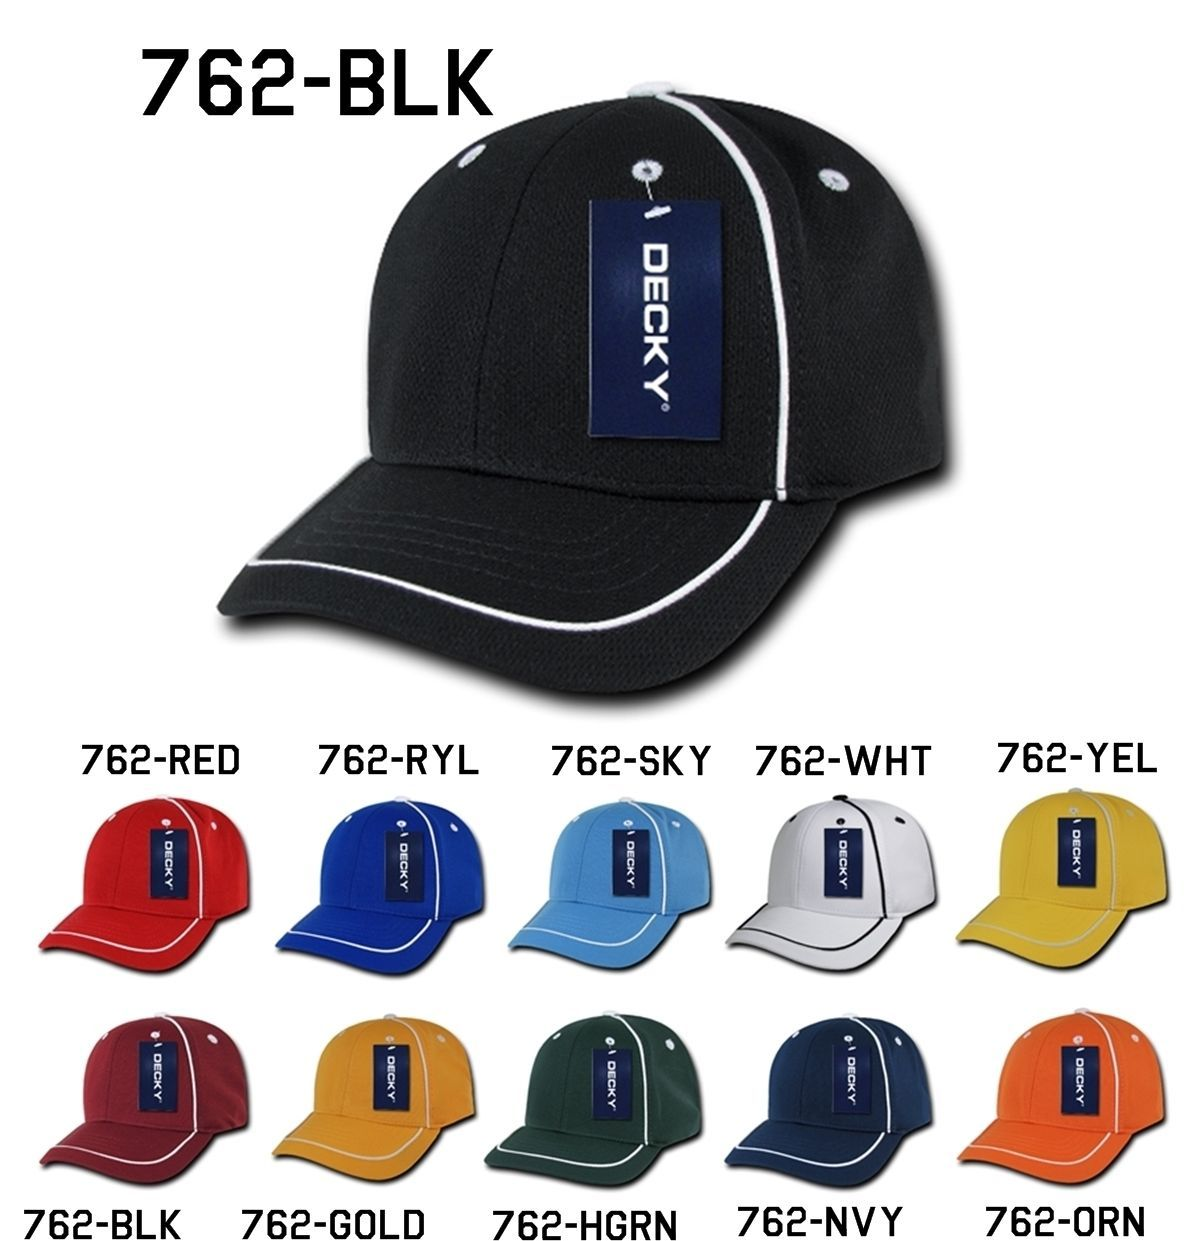 CUSTOM EMBROIDERY Personalized Customized Decky Performance Mesh Piped Cap 762